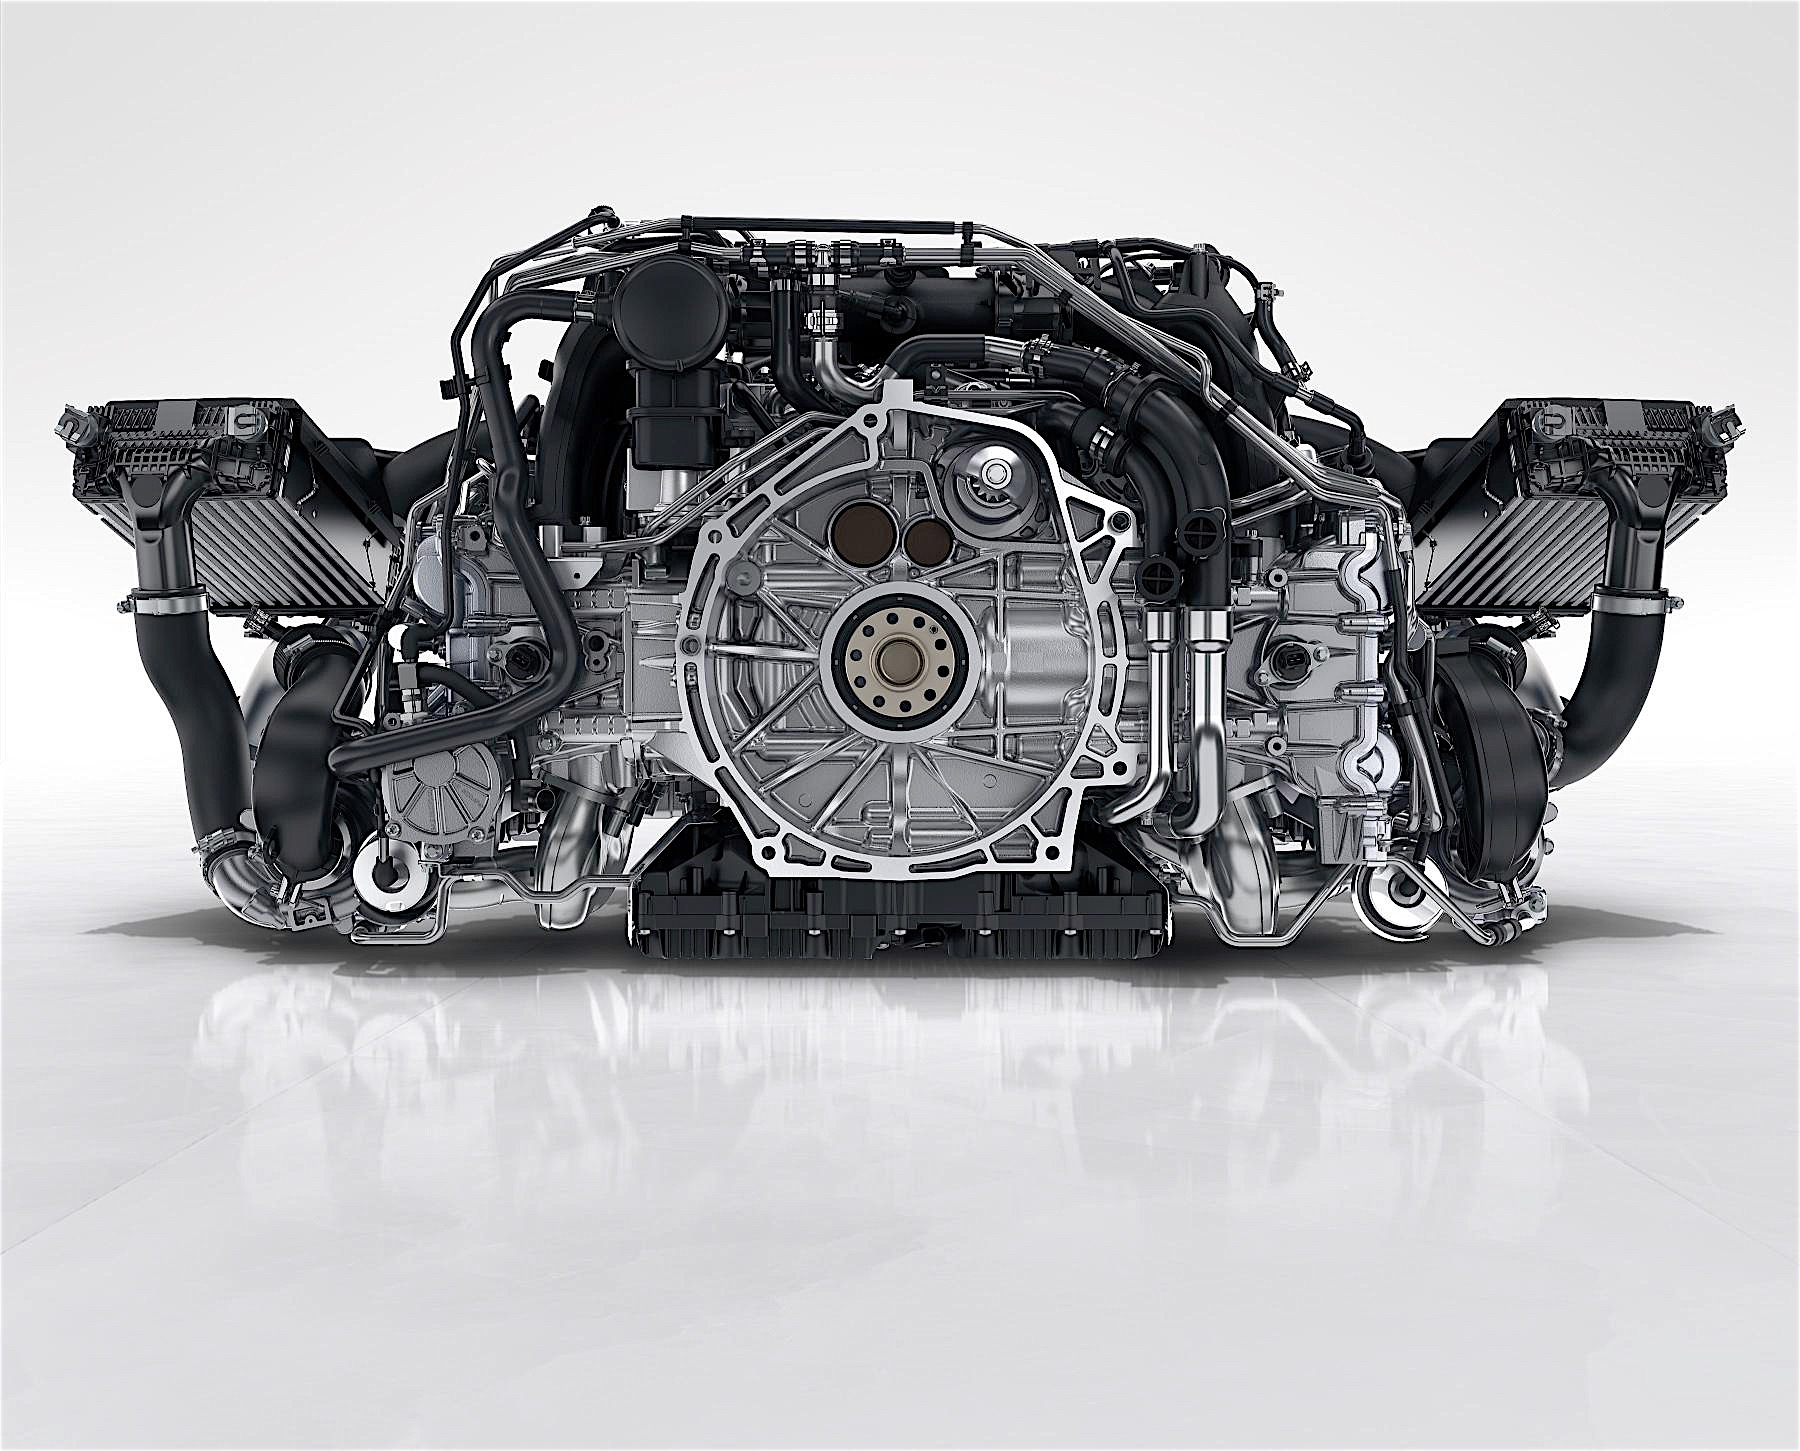 Porsche s Mid Engine Supercar Expected To Feature Flat